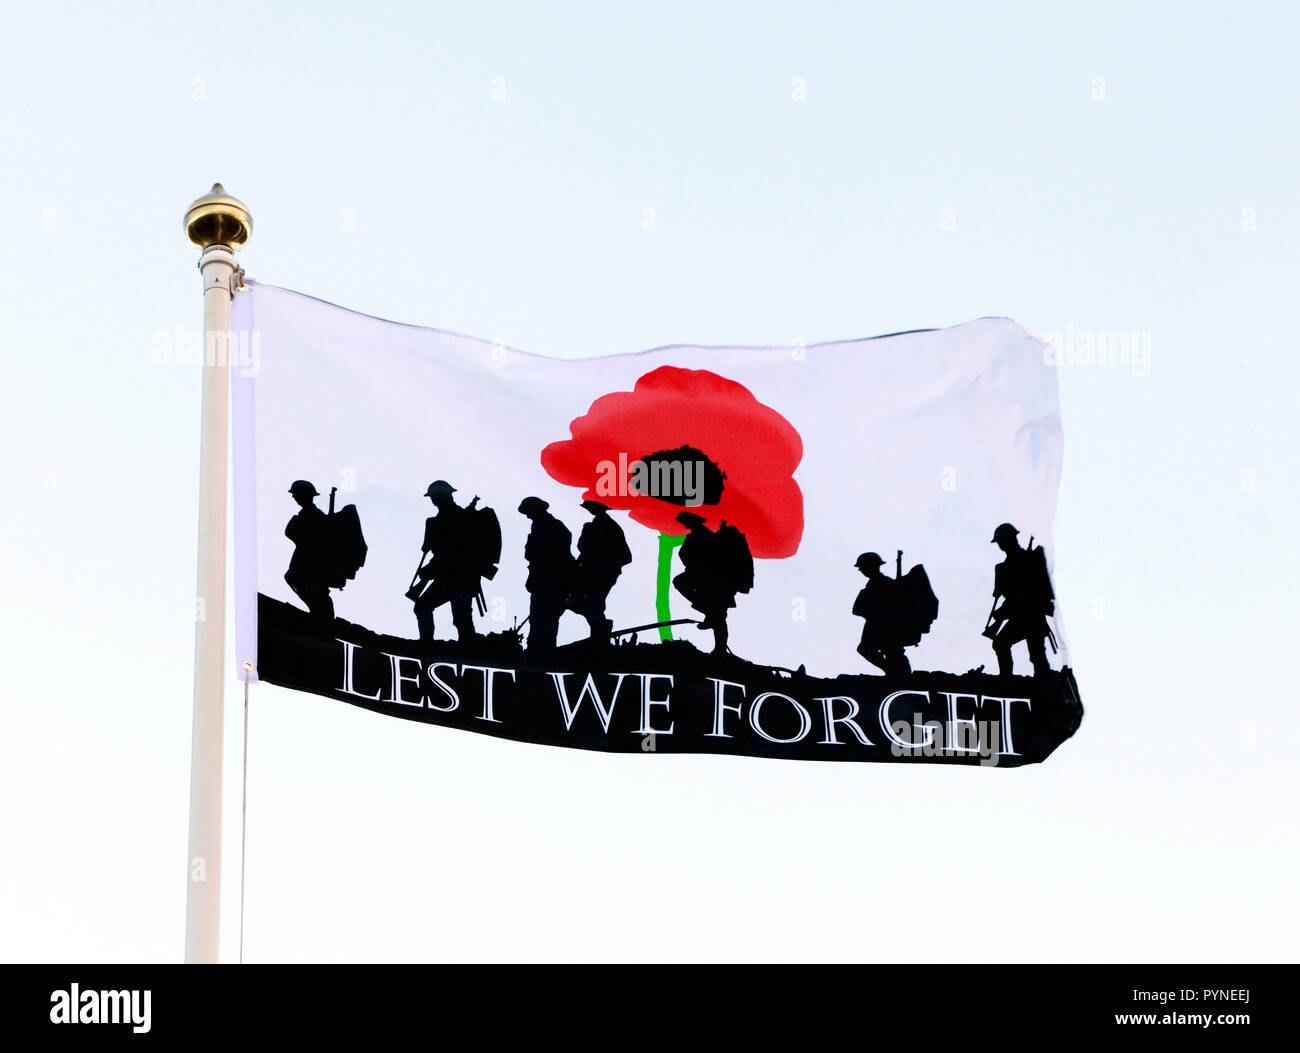 Lest We Forget, banner, flag, remembrance, red, poppy, soldiers, armed, army, England, UK - Stock Image